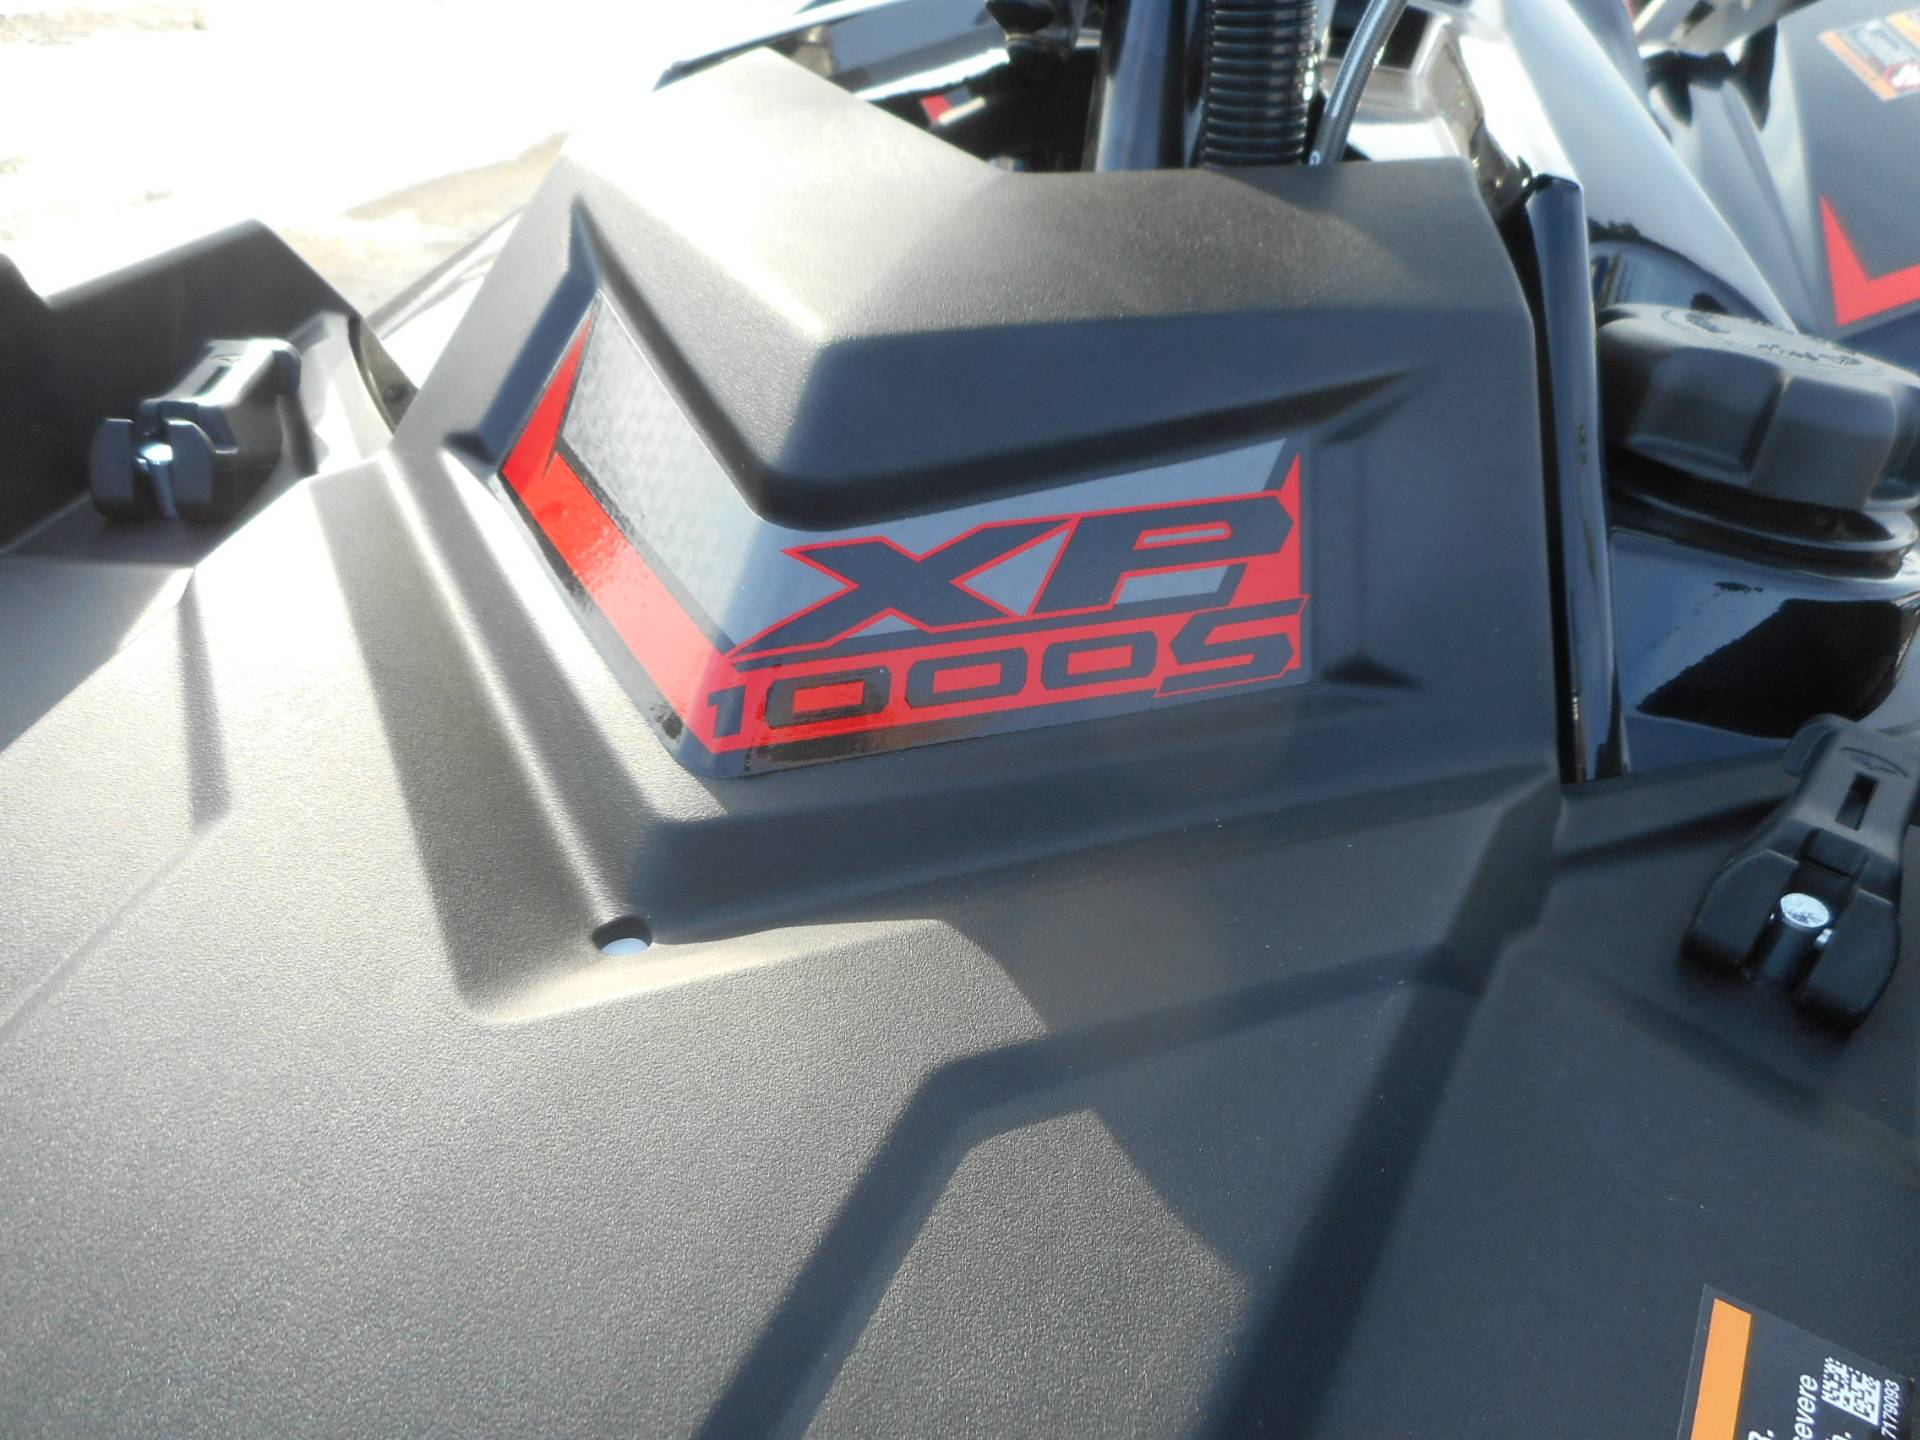 2020 Polaris Scrambler XP 1000 S in Belvidere, Illinois - Photo 10